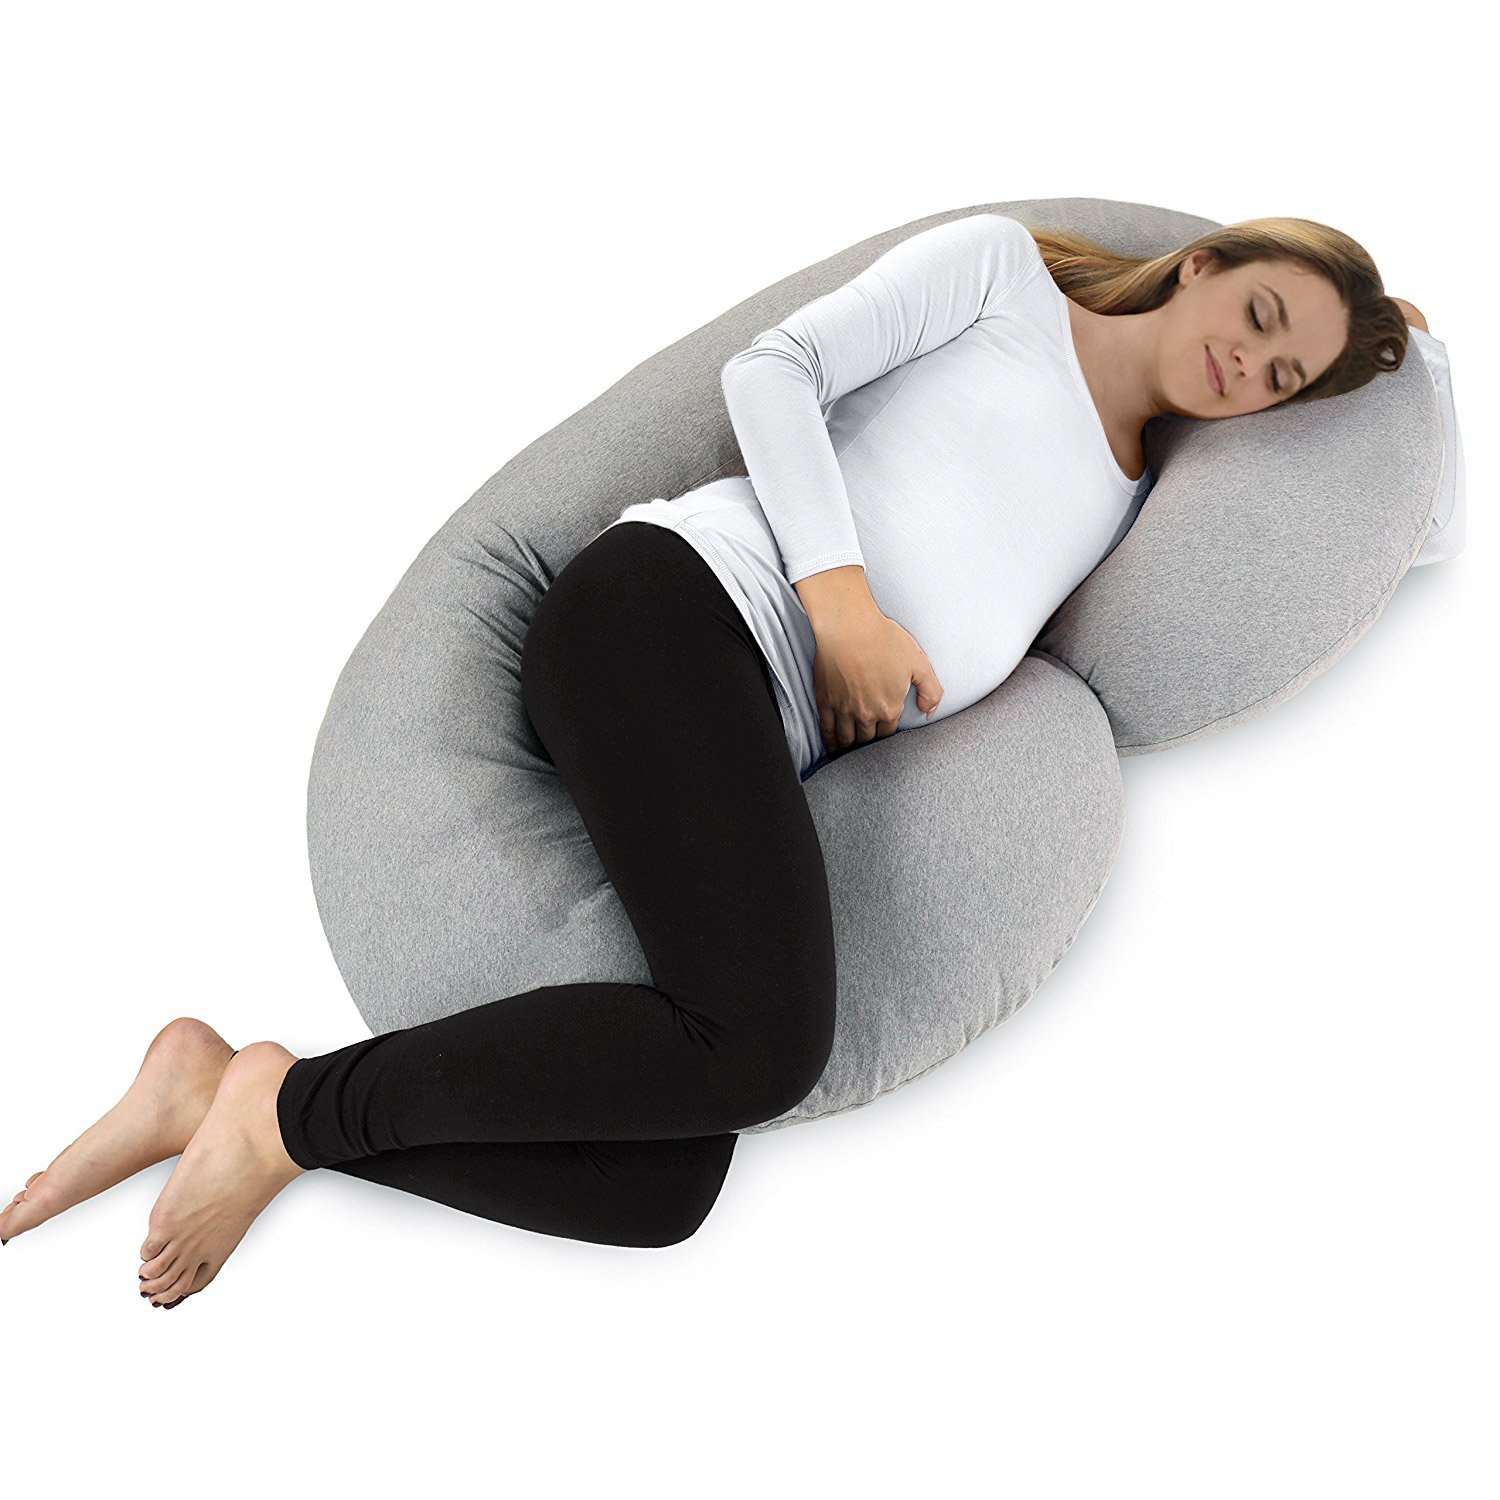 NiDream Bedding C Shaped Body Pillow - for Pregnant Women - Side Sleeping - Nursing - with Double Zipper - Removable Comfortable Jersey Cover - Grey